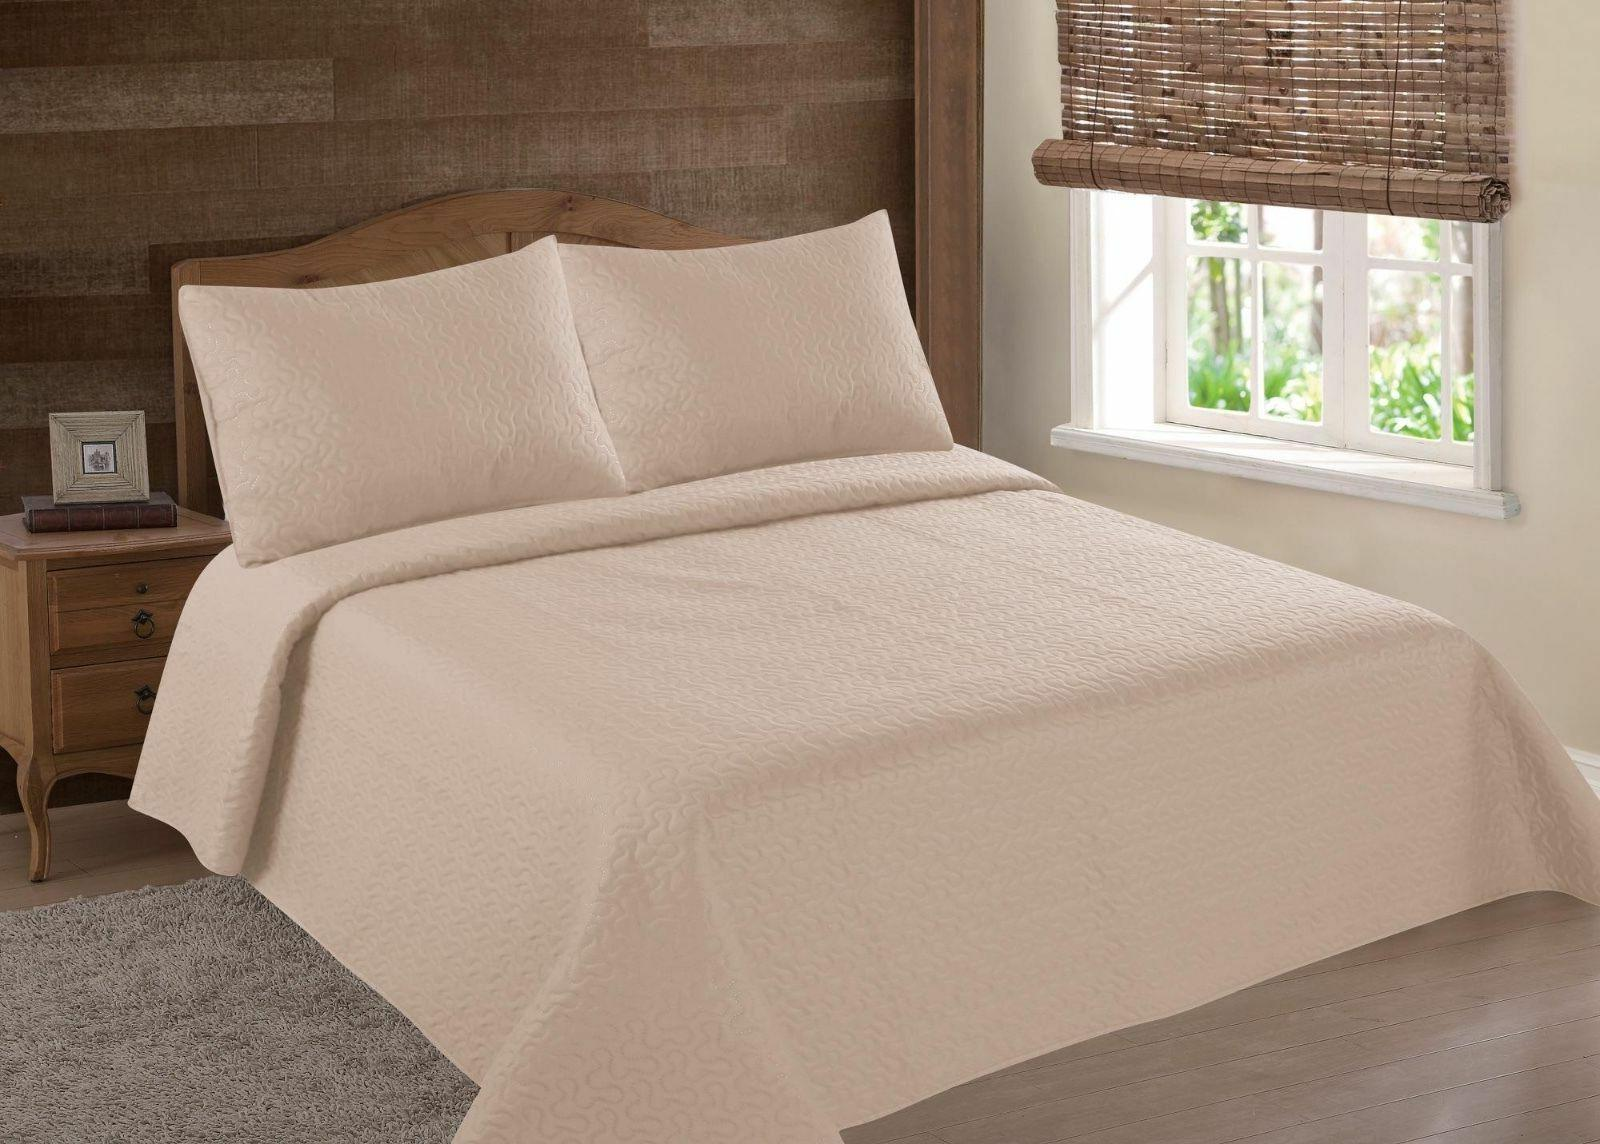 MIDWEST TAUPE CAMEL NENA SOLID QUILT BEDDING BEDSPREAD COVER